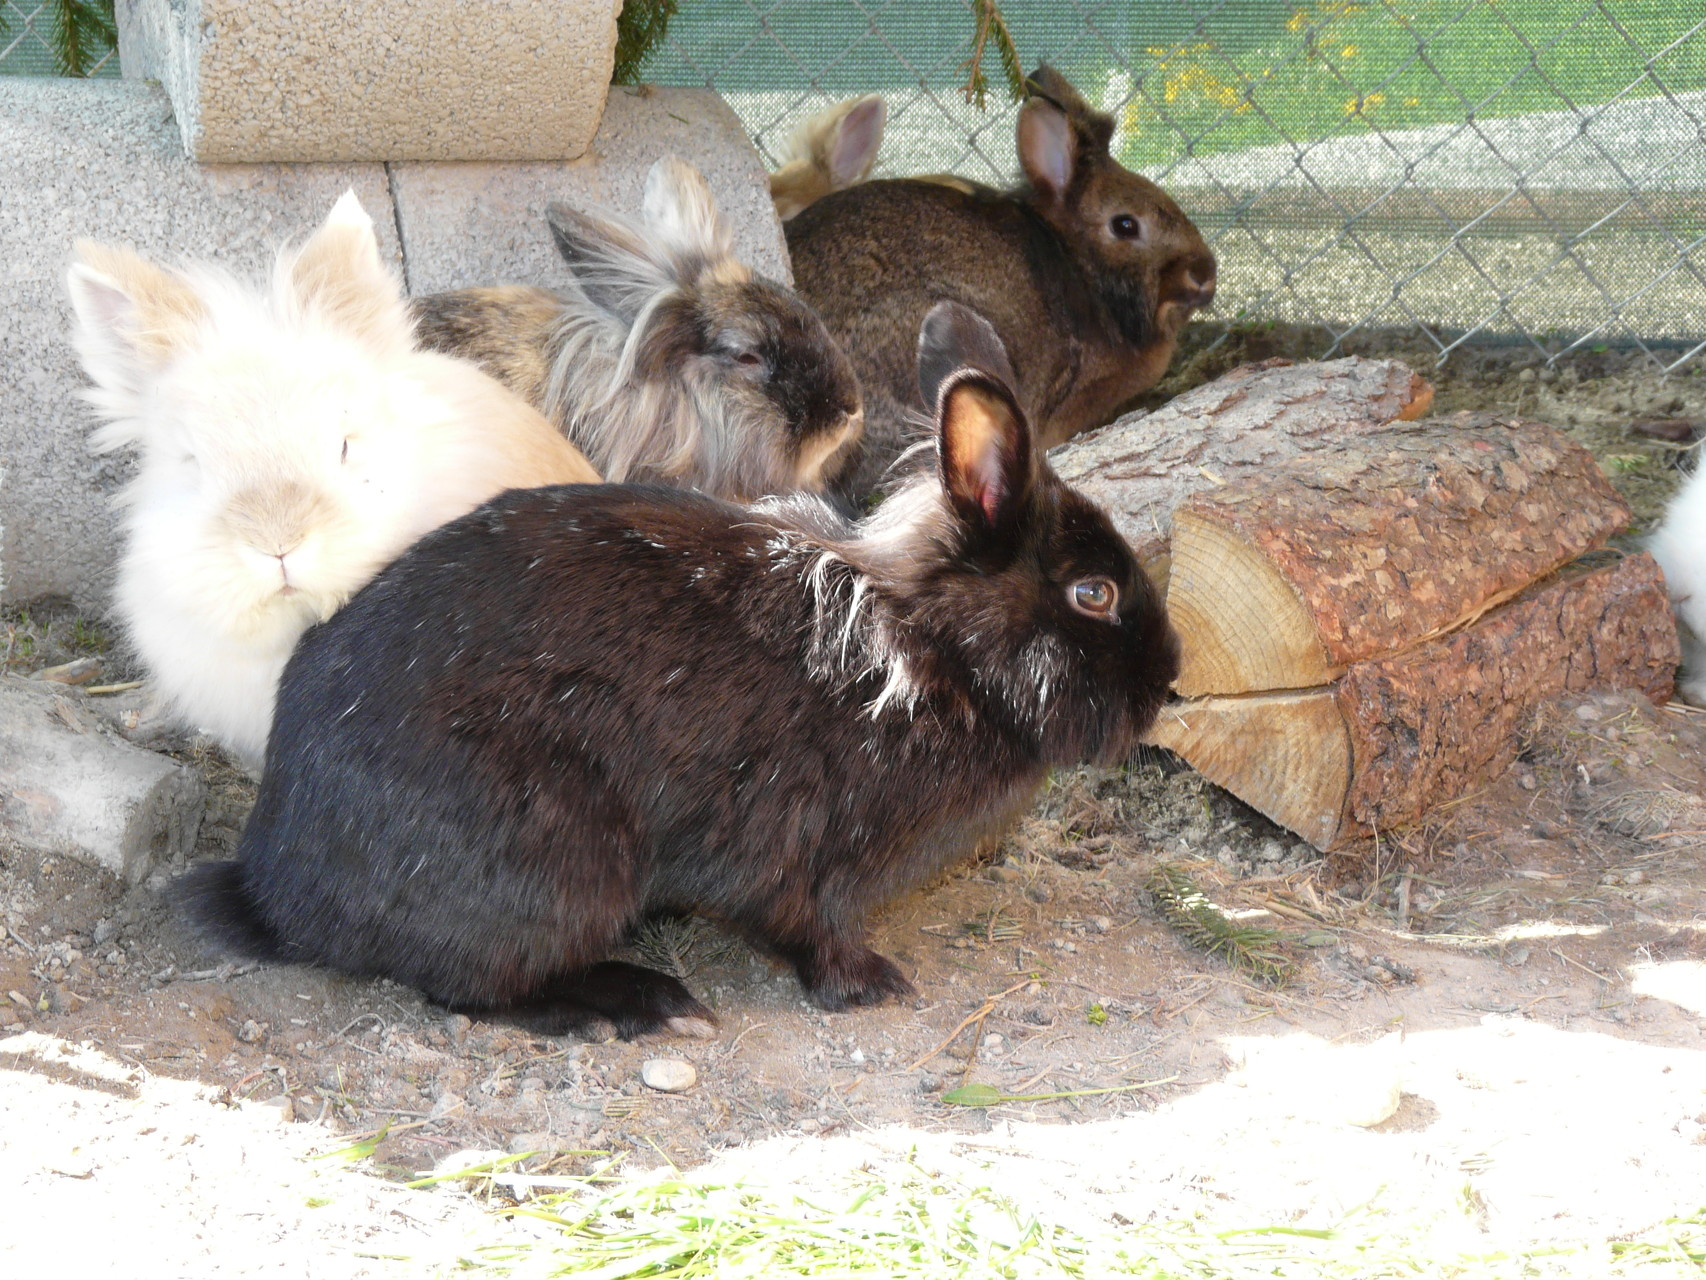 Our bunnies in the garden